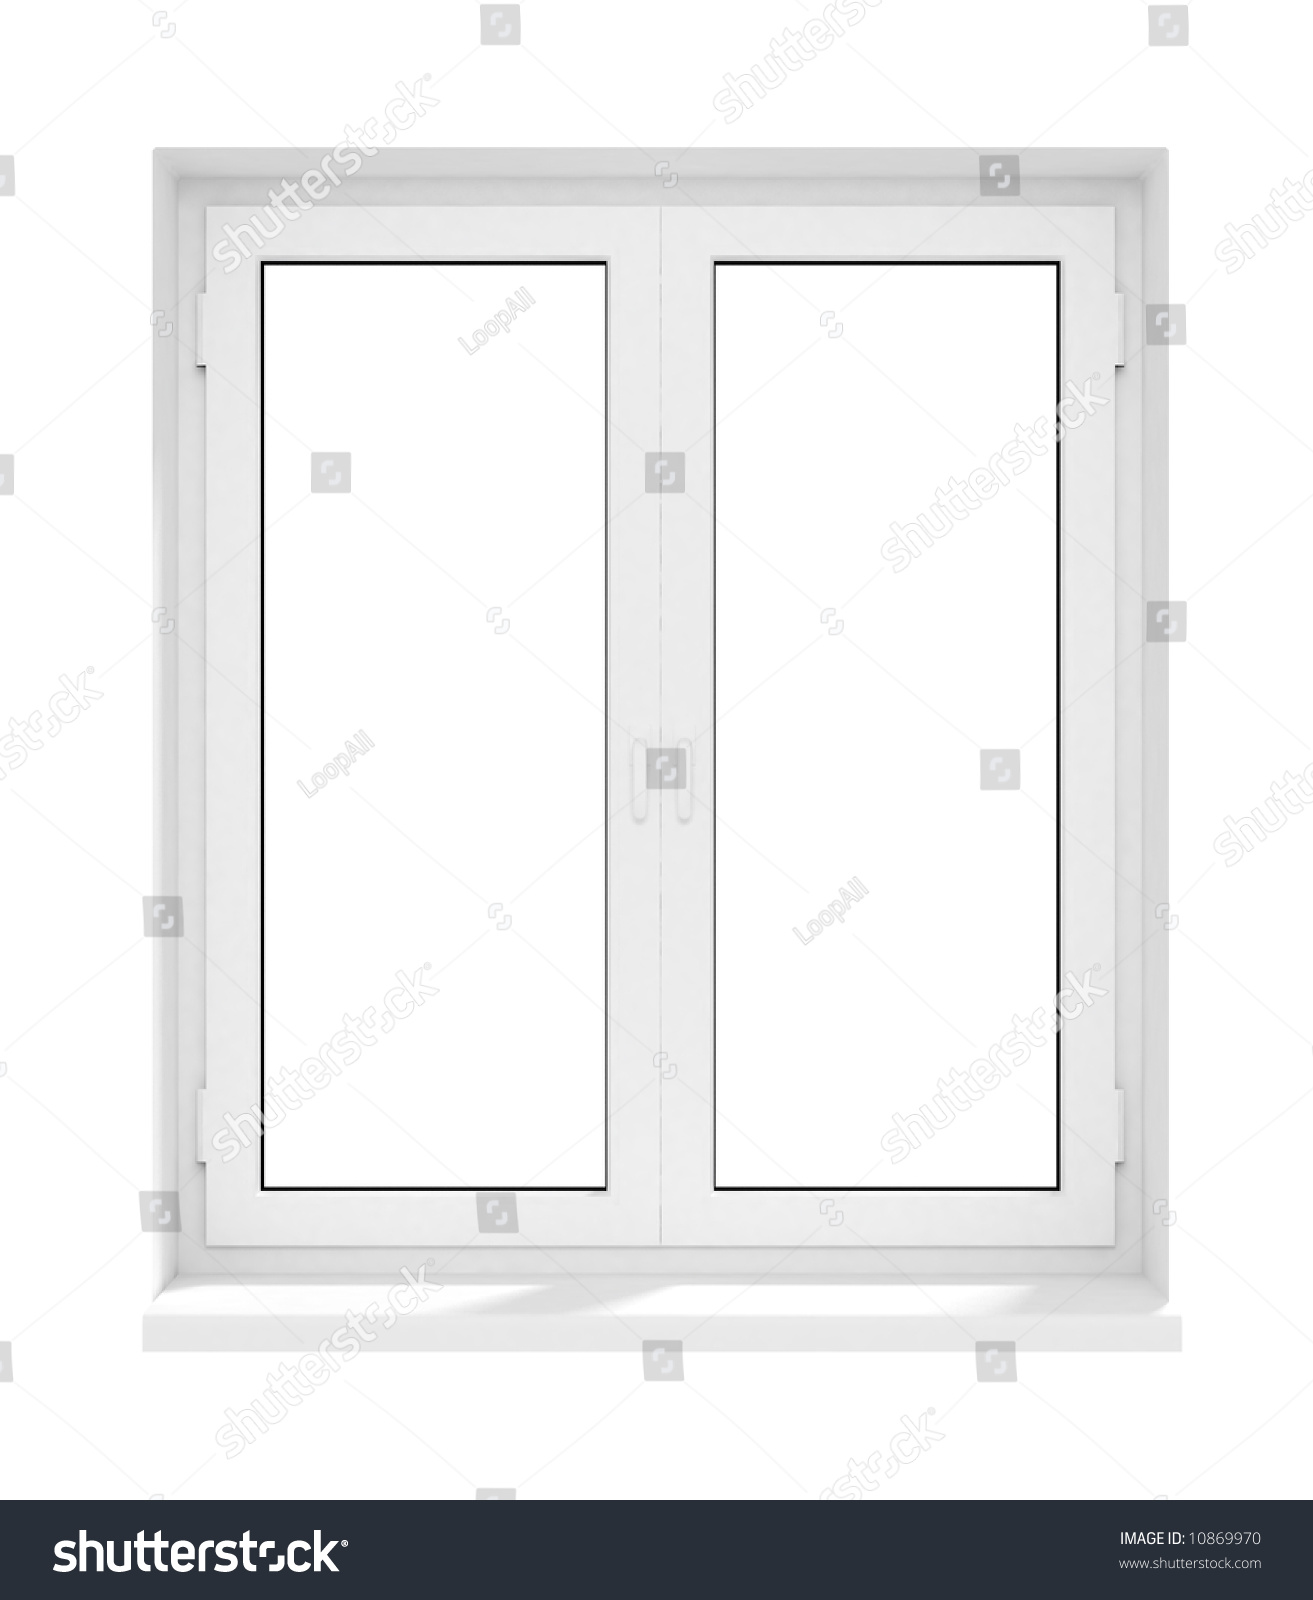 Closed Window Frame : New closed plastic glass window frame isolated on the